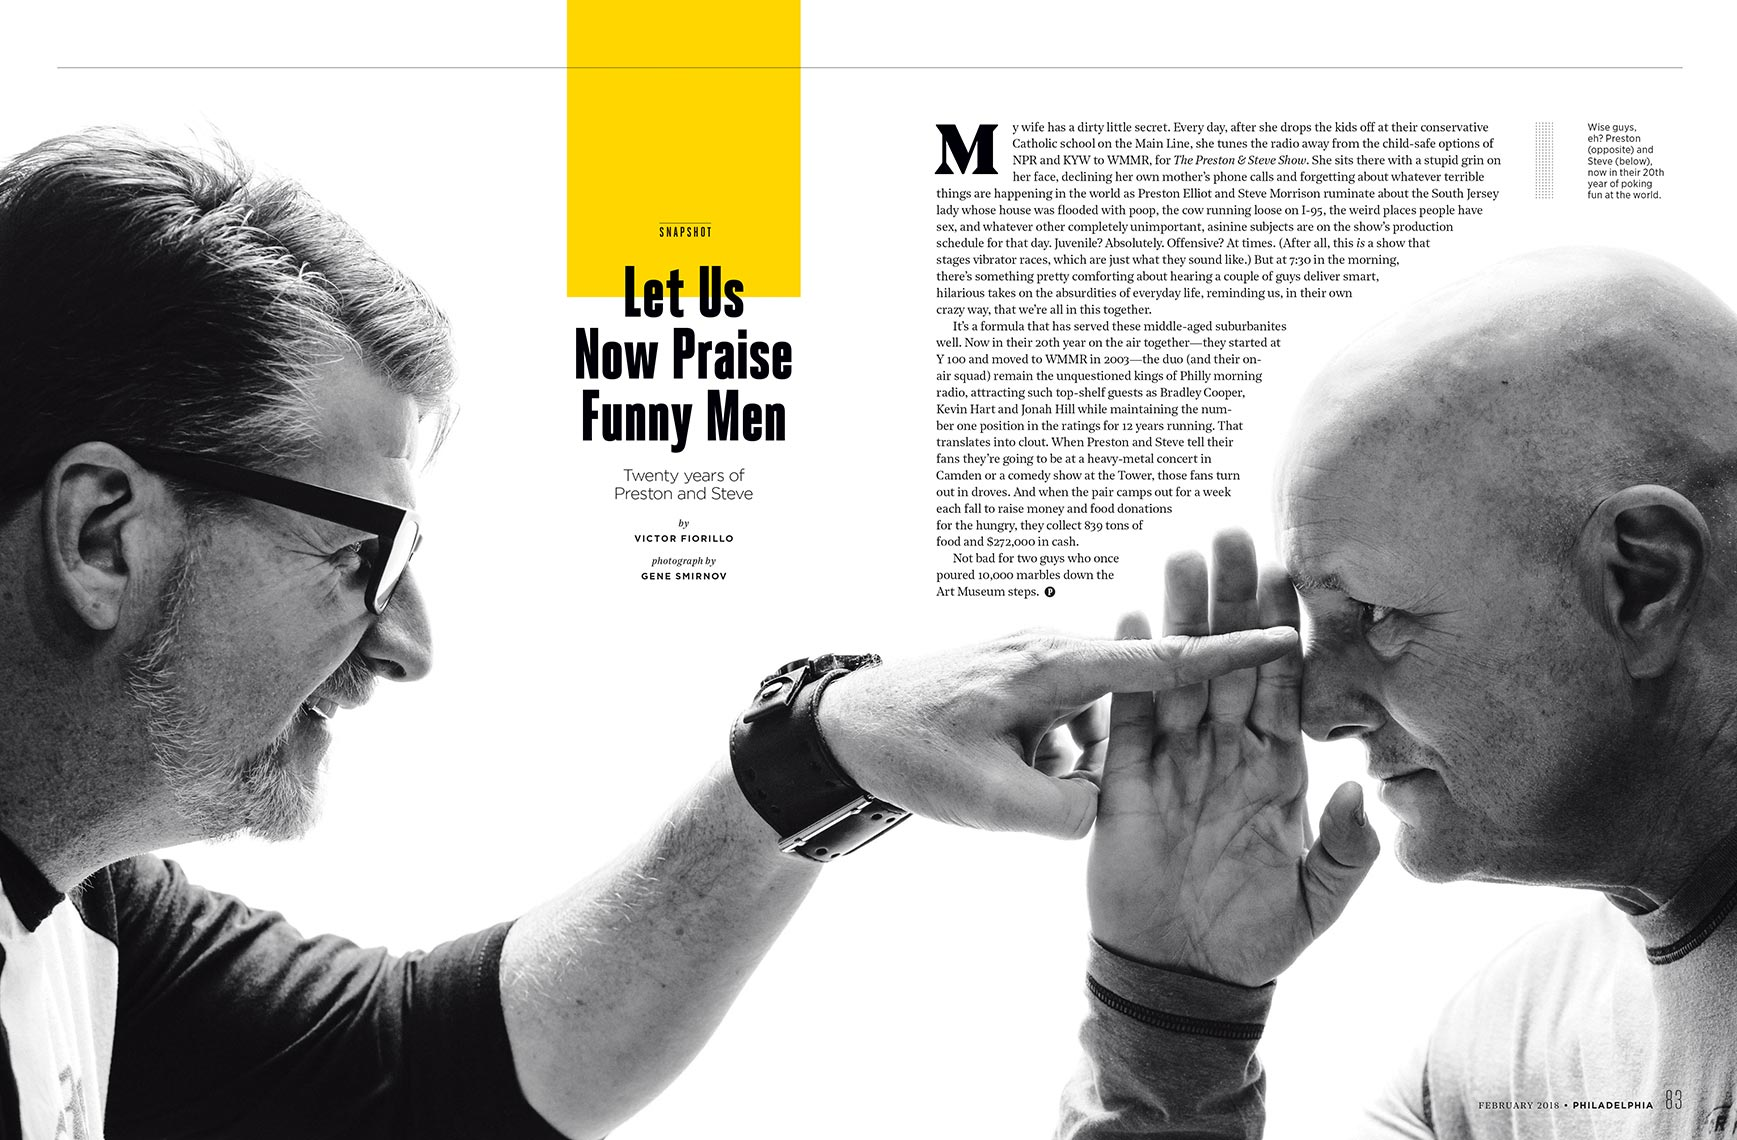 Preston & Steve for Philadelphia Magazine